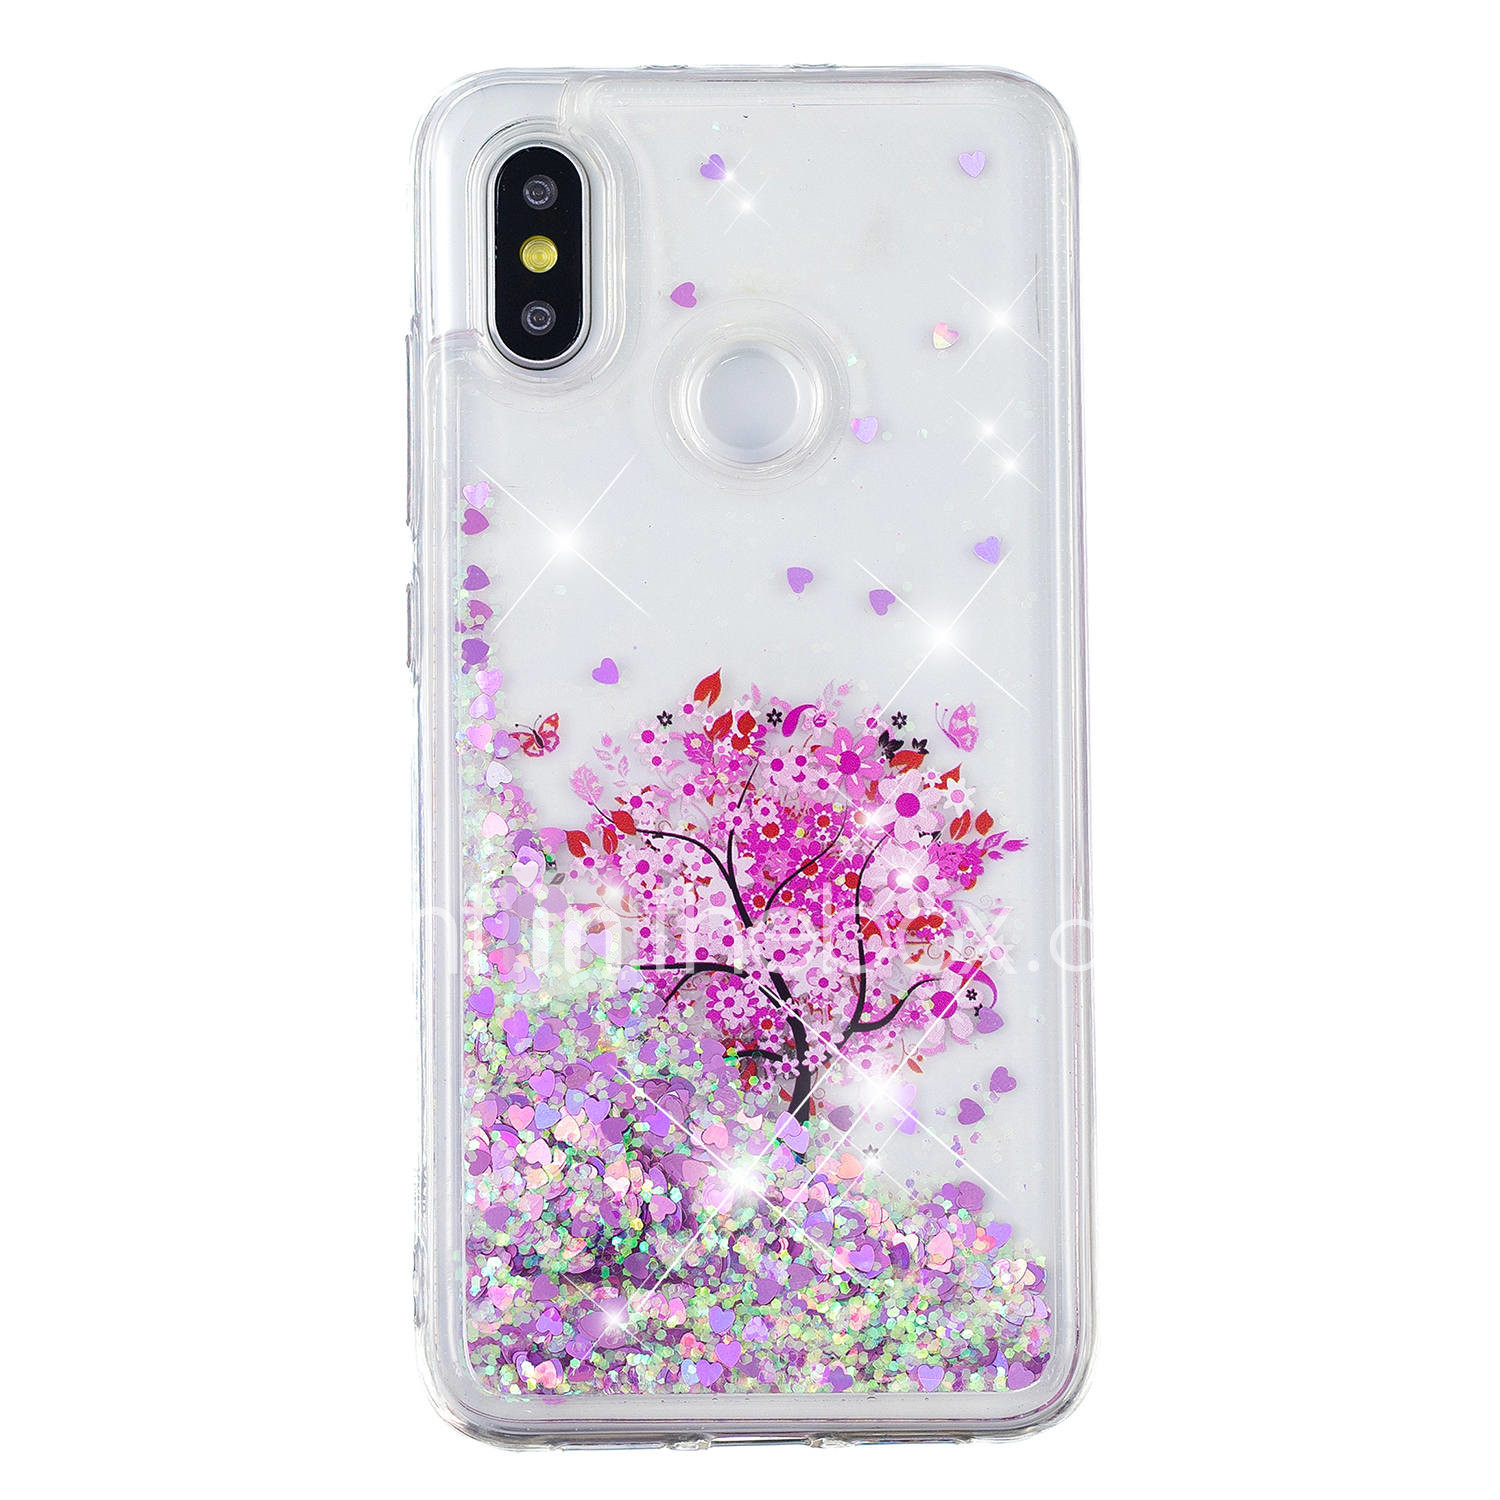 best service ffcb8 0b0b7 Case For Xiaomi Xiaomi Redmi Note 5 Pro / Xiaomi Redmi Note 4X / Xiaomi  Redmi Note 4 Flowing Liquid / Pattern / Glitter Shine Back Cover Tree / ...